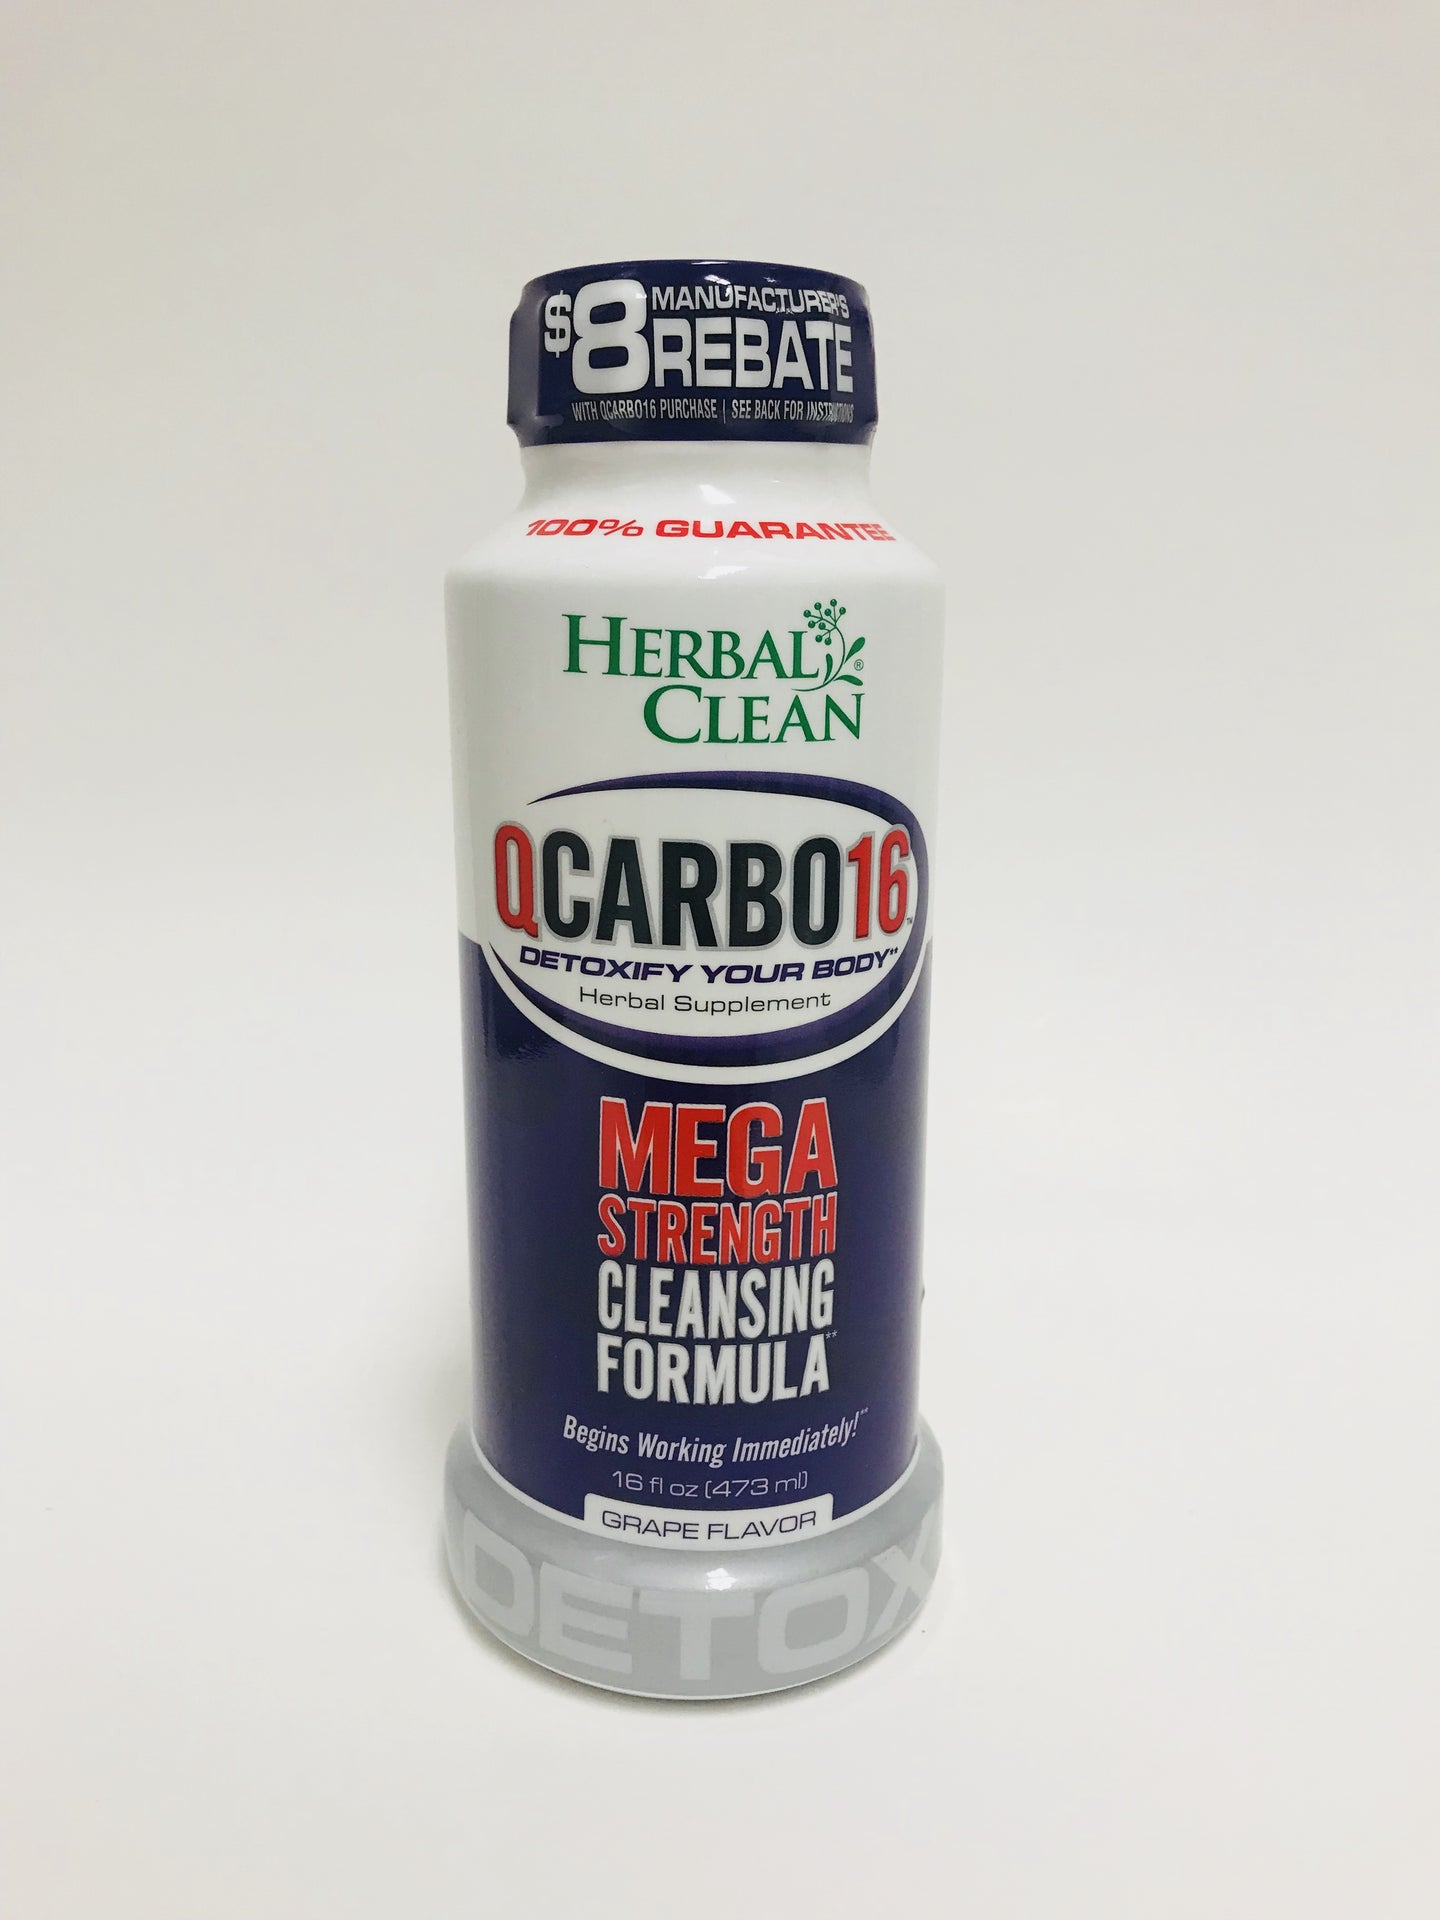 Herbal Clean Qcarbo16 Cleansing Formula Grape 16 fl oz.